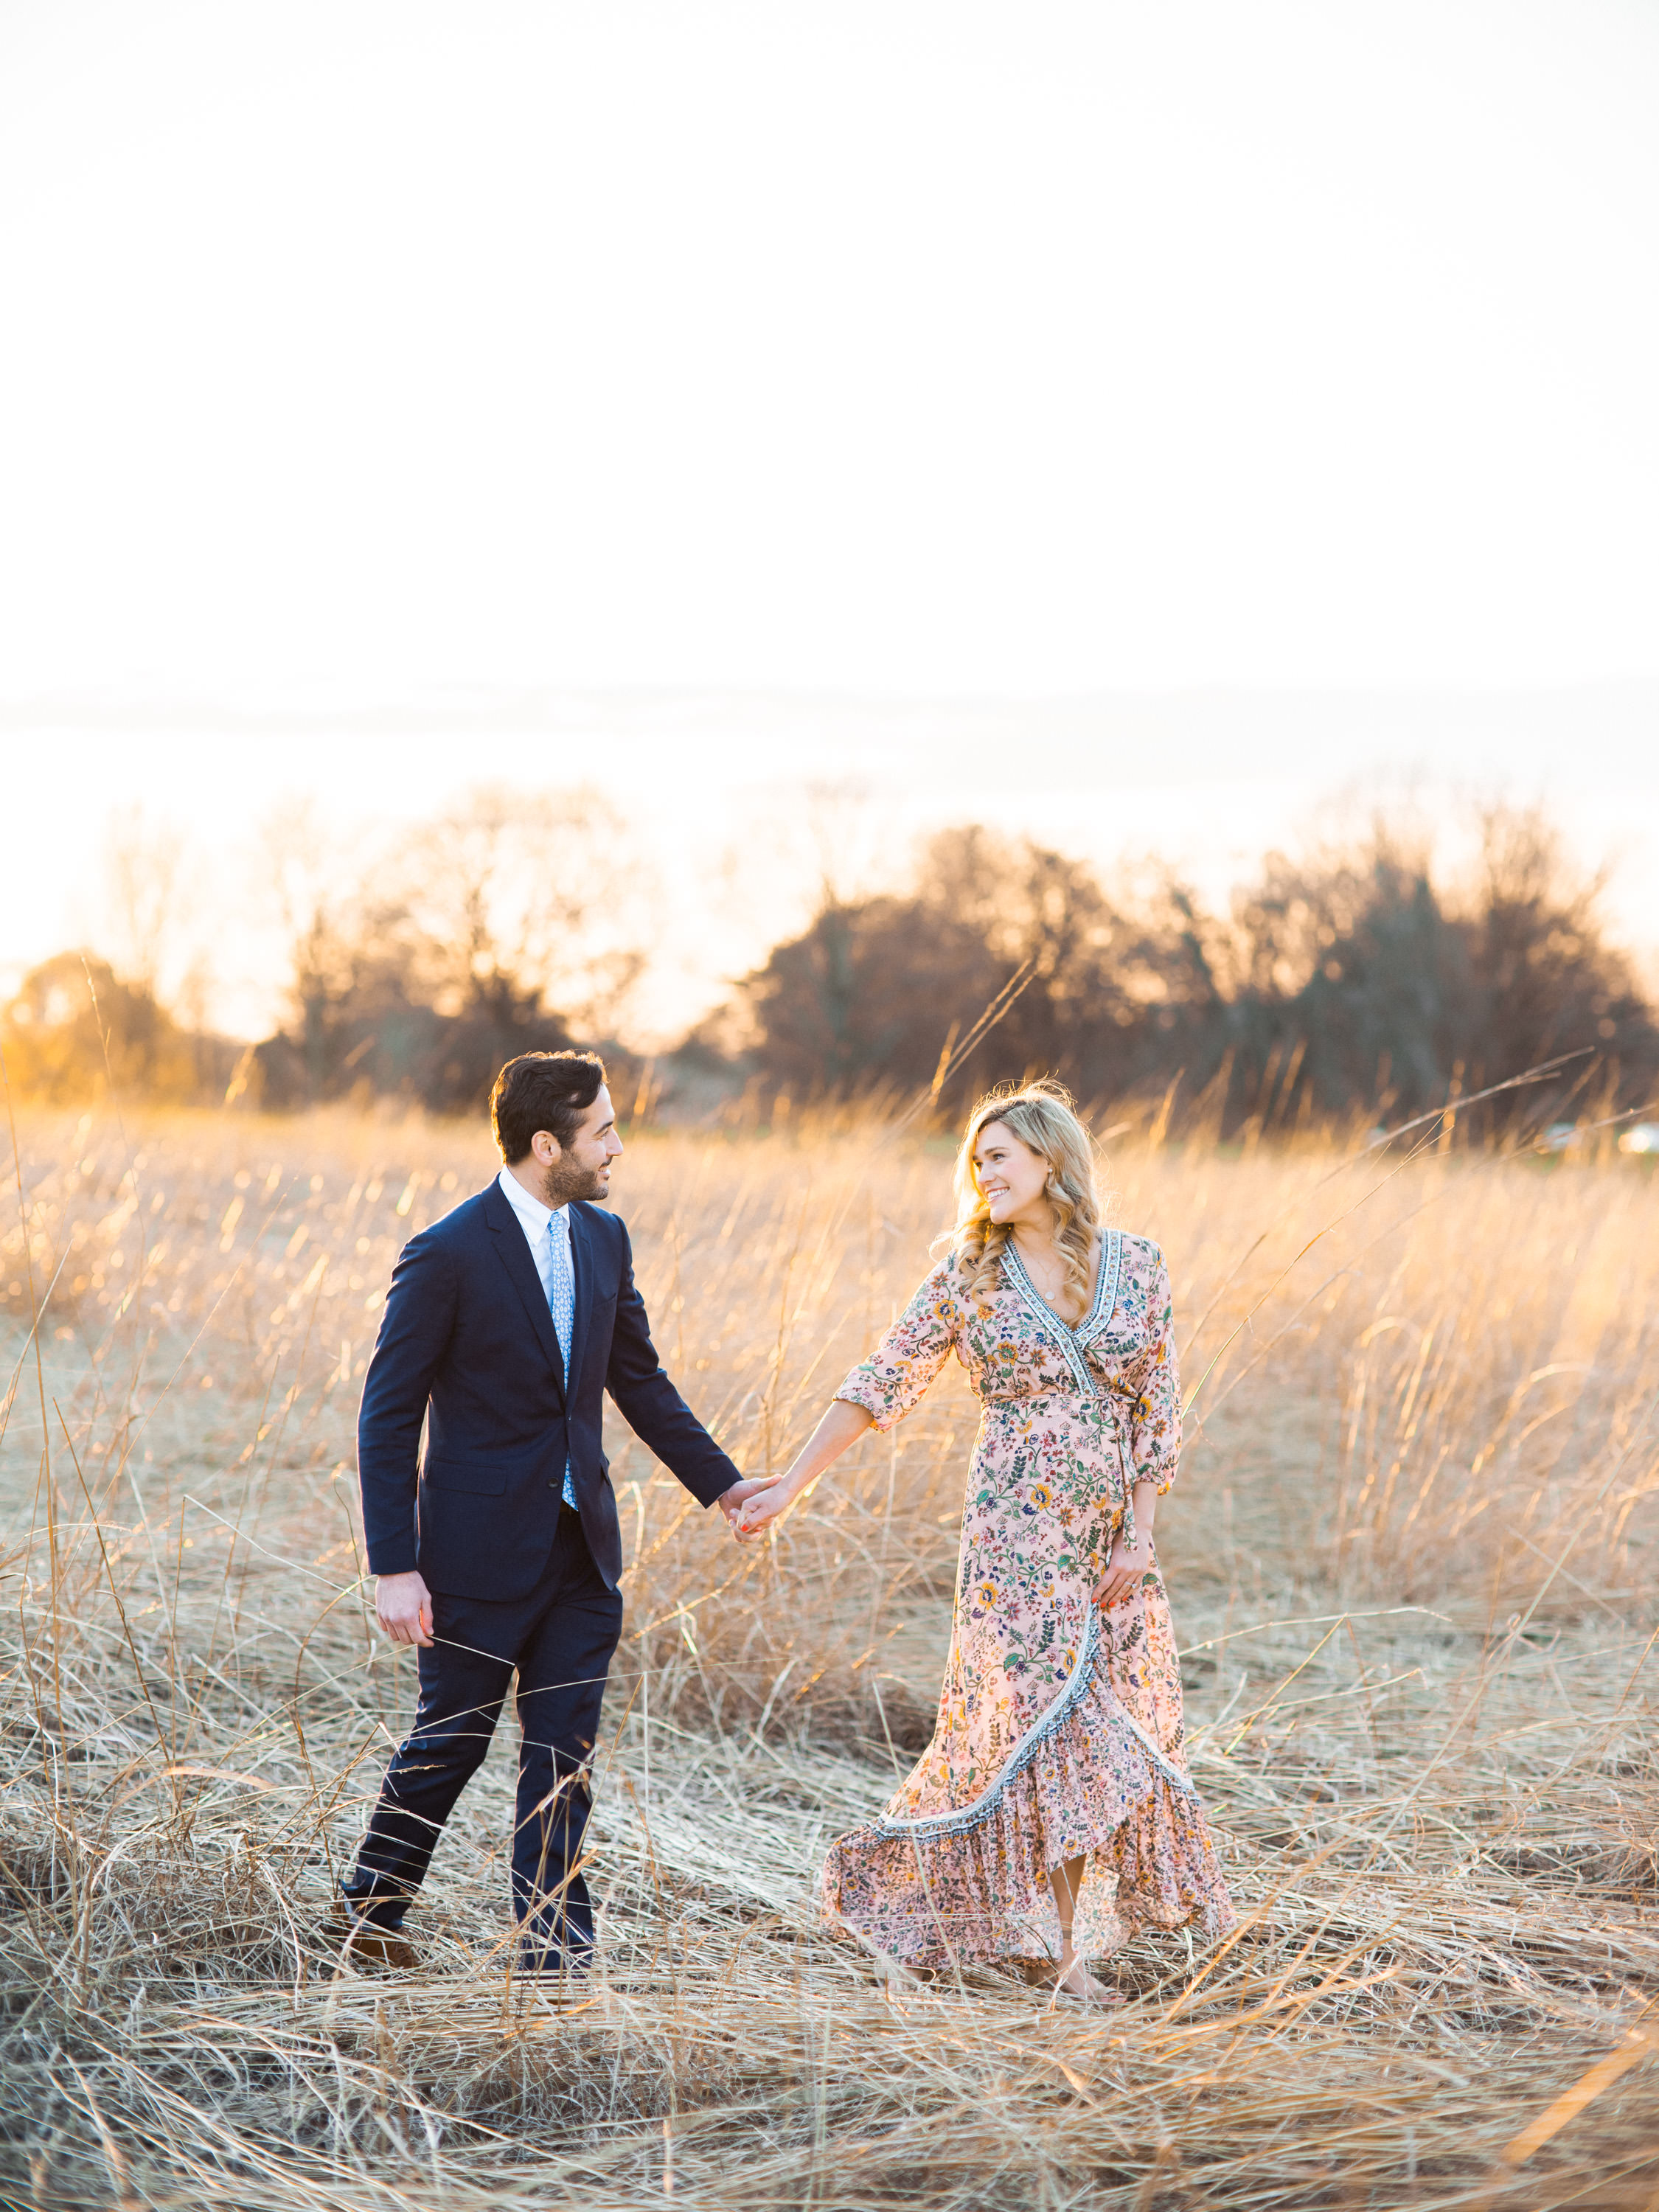 Benny & Sarah Engagement Session at Bernheim Arboretum (Web Use Only)-55.jpg